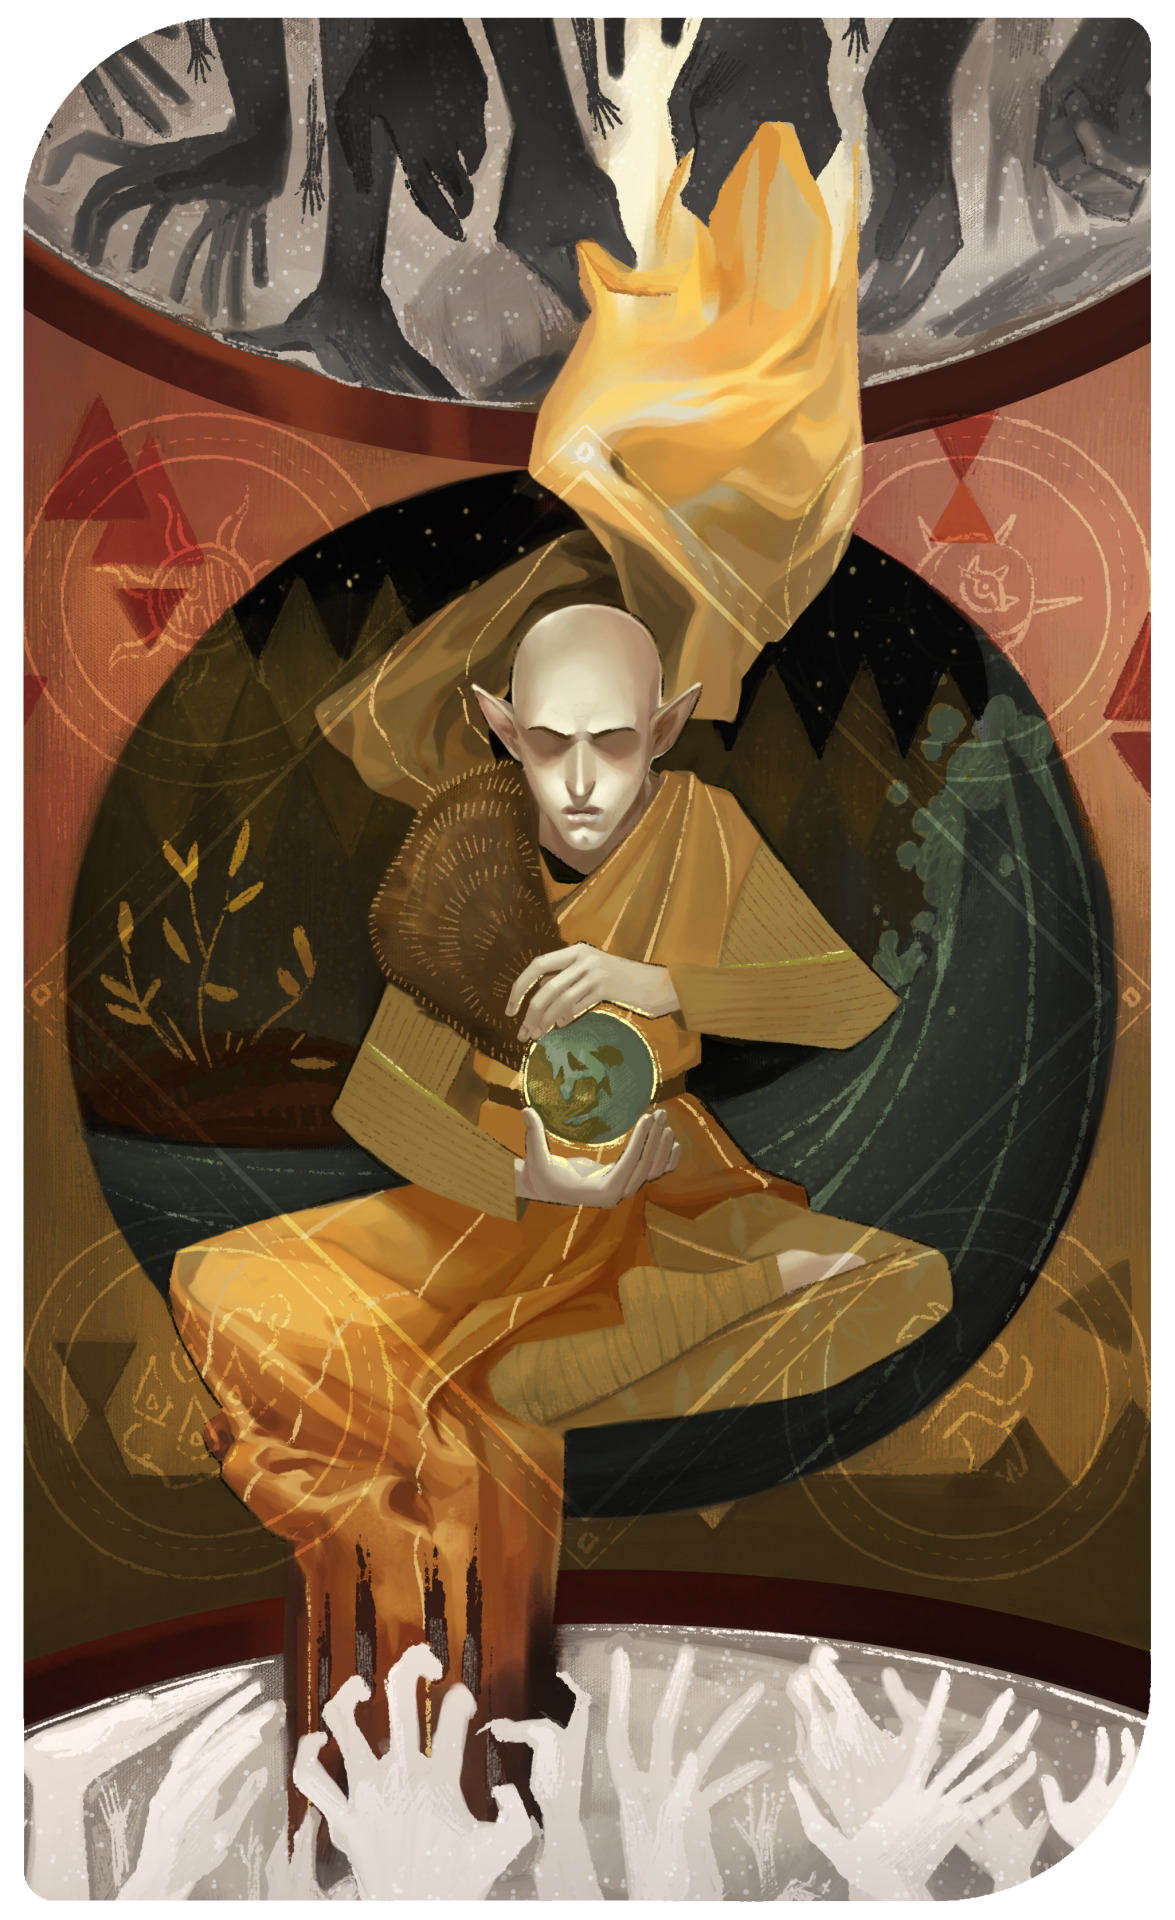 paperwick :      The World     He didn't do it to be right. He did it to save them.     This is a pre-game card for Solas. For spoiler reasons and also because everyone already knows, not much of an explanation for this one. Three zones from outer to inner: Beyond/Fade/Thedas.    Assana Lavellan Saga    Want a card of your own? Hire me! (It'd be somewhere between $80-200).   Anyway, probably more to come. Stay tuned!